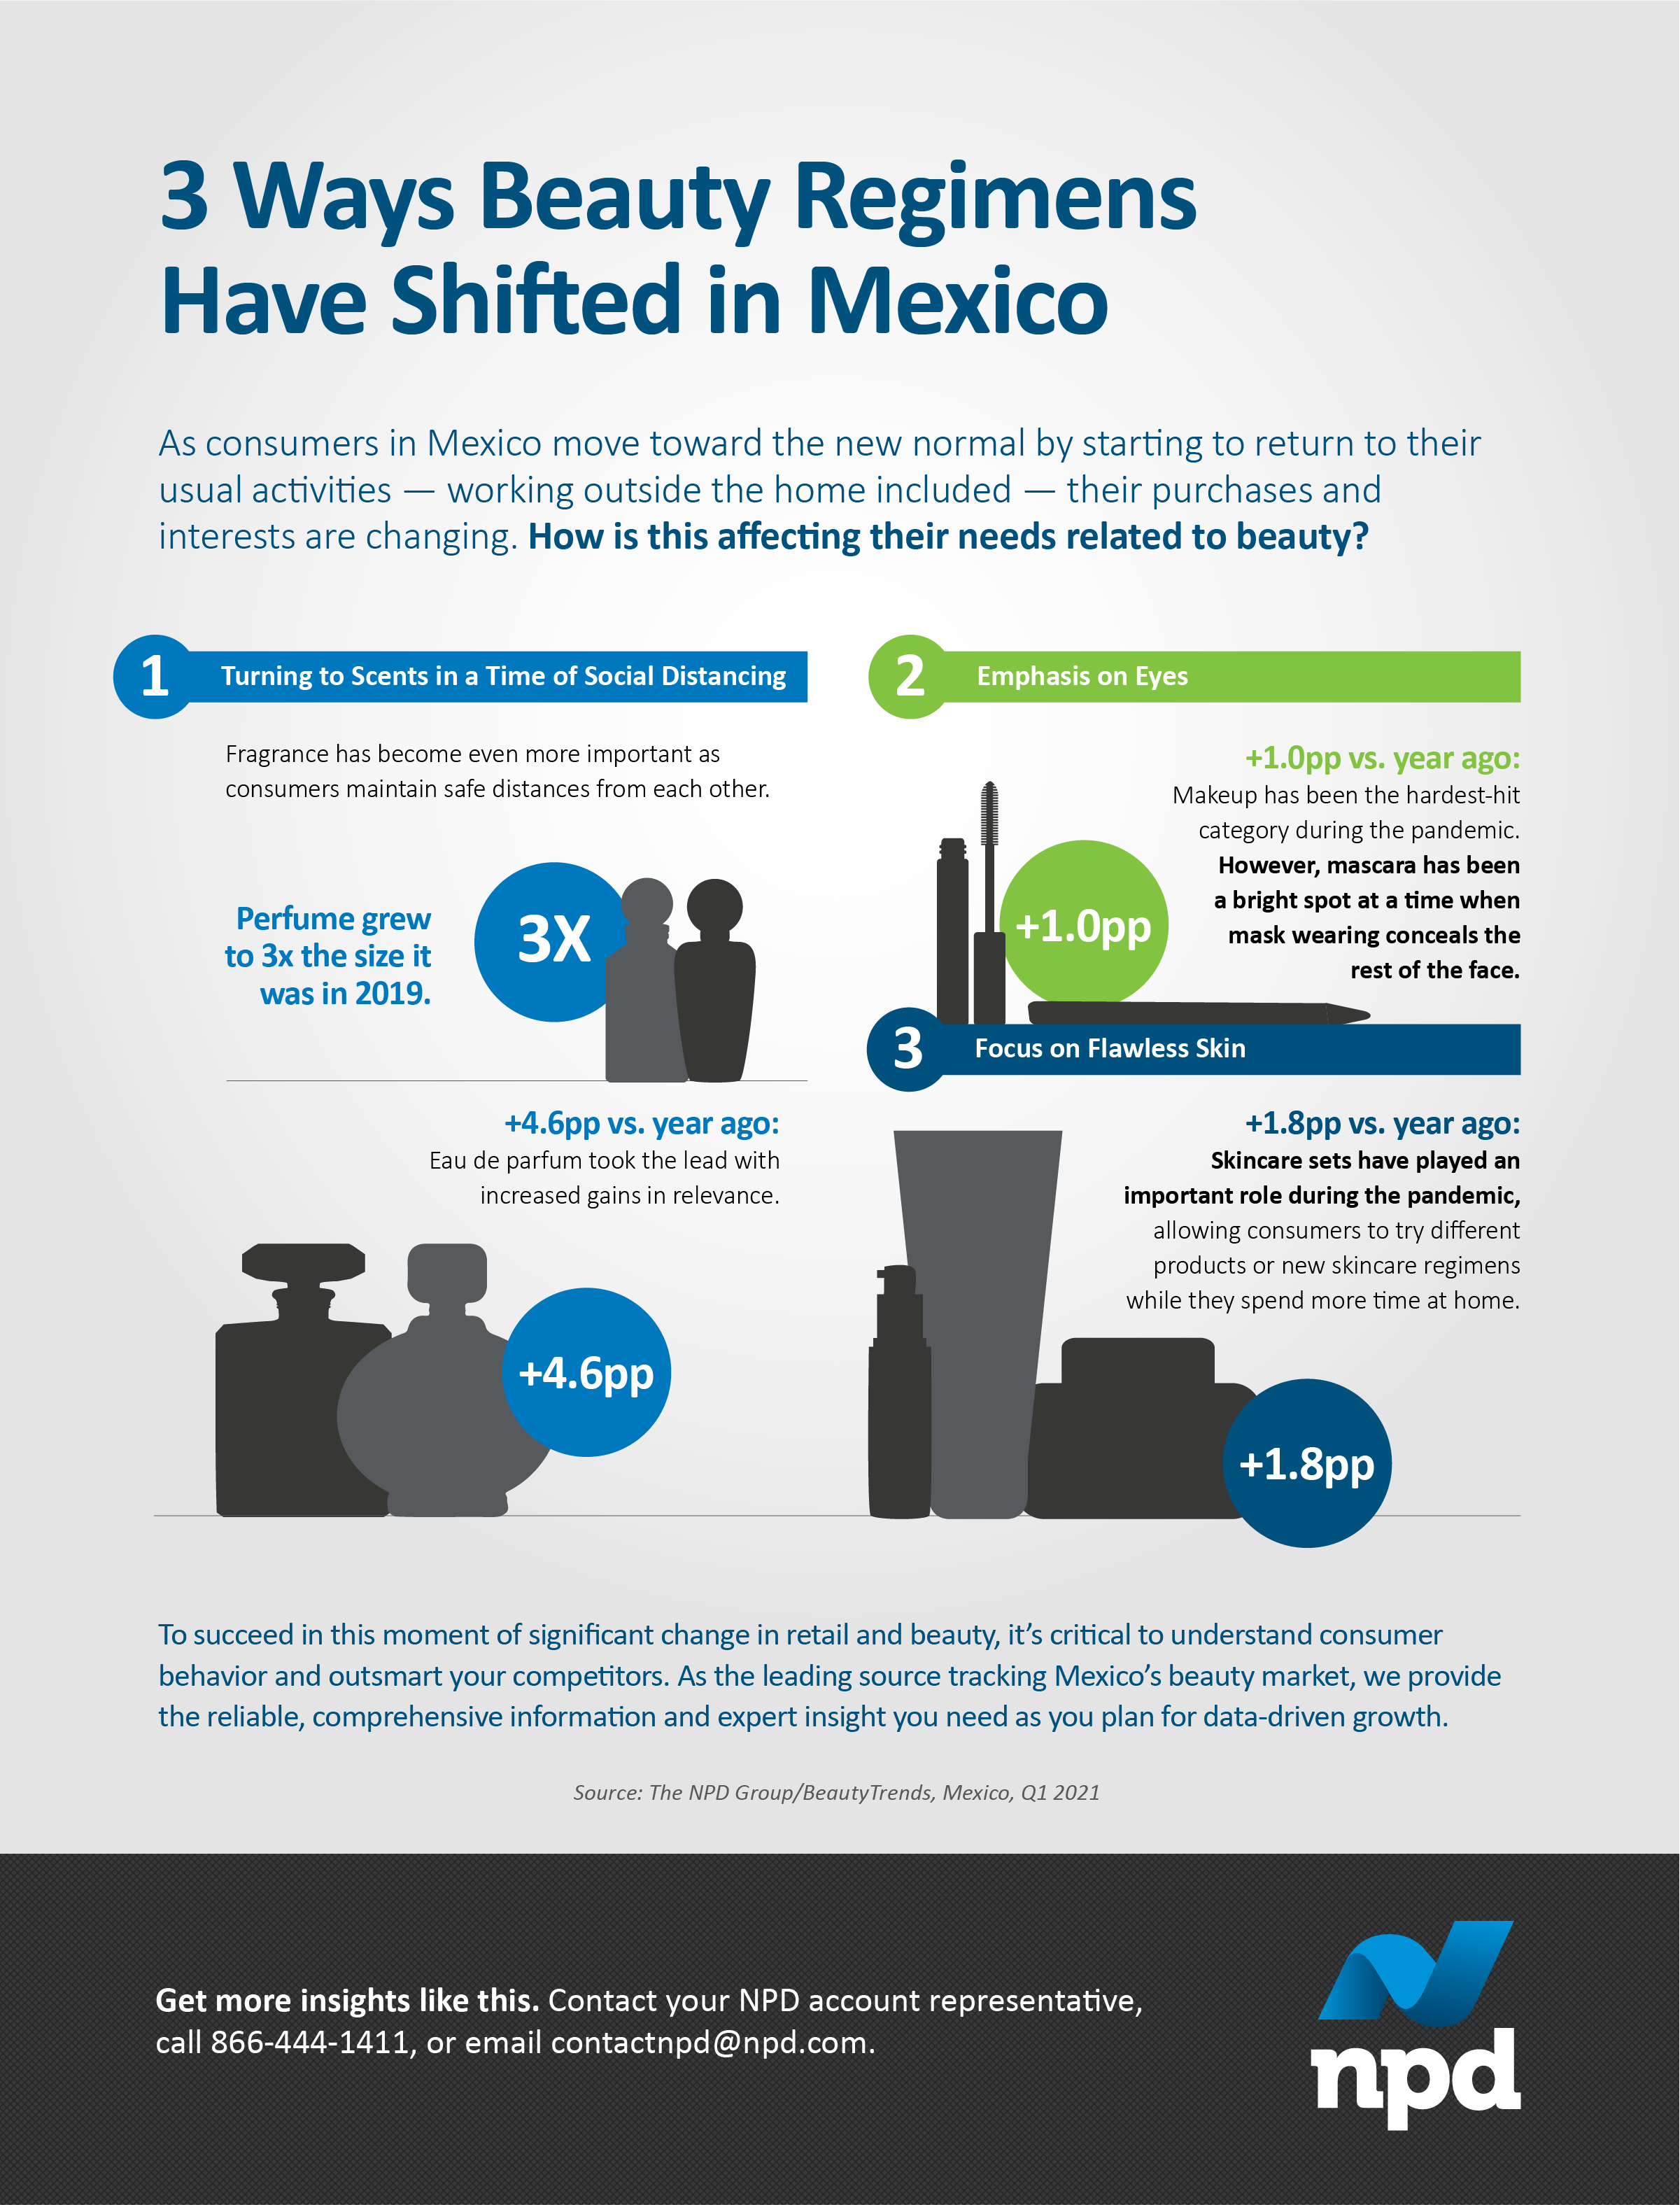 As consumers in Mexico move toward the new normal by starting to return to their usual activities — working outside the home included — their purchases and interests are changing. How is this affecting their needs related to beauty?